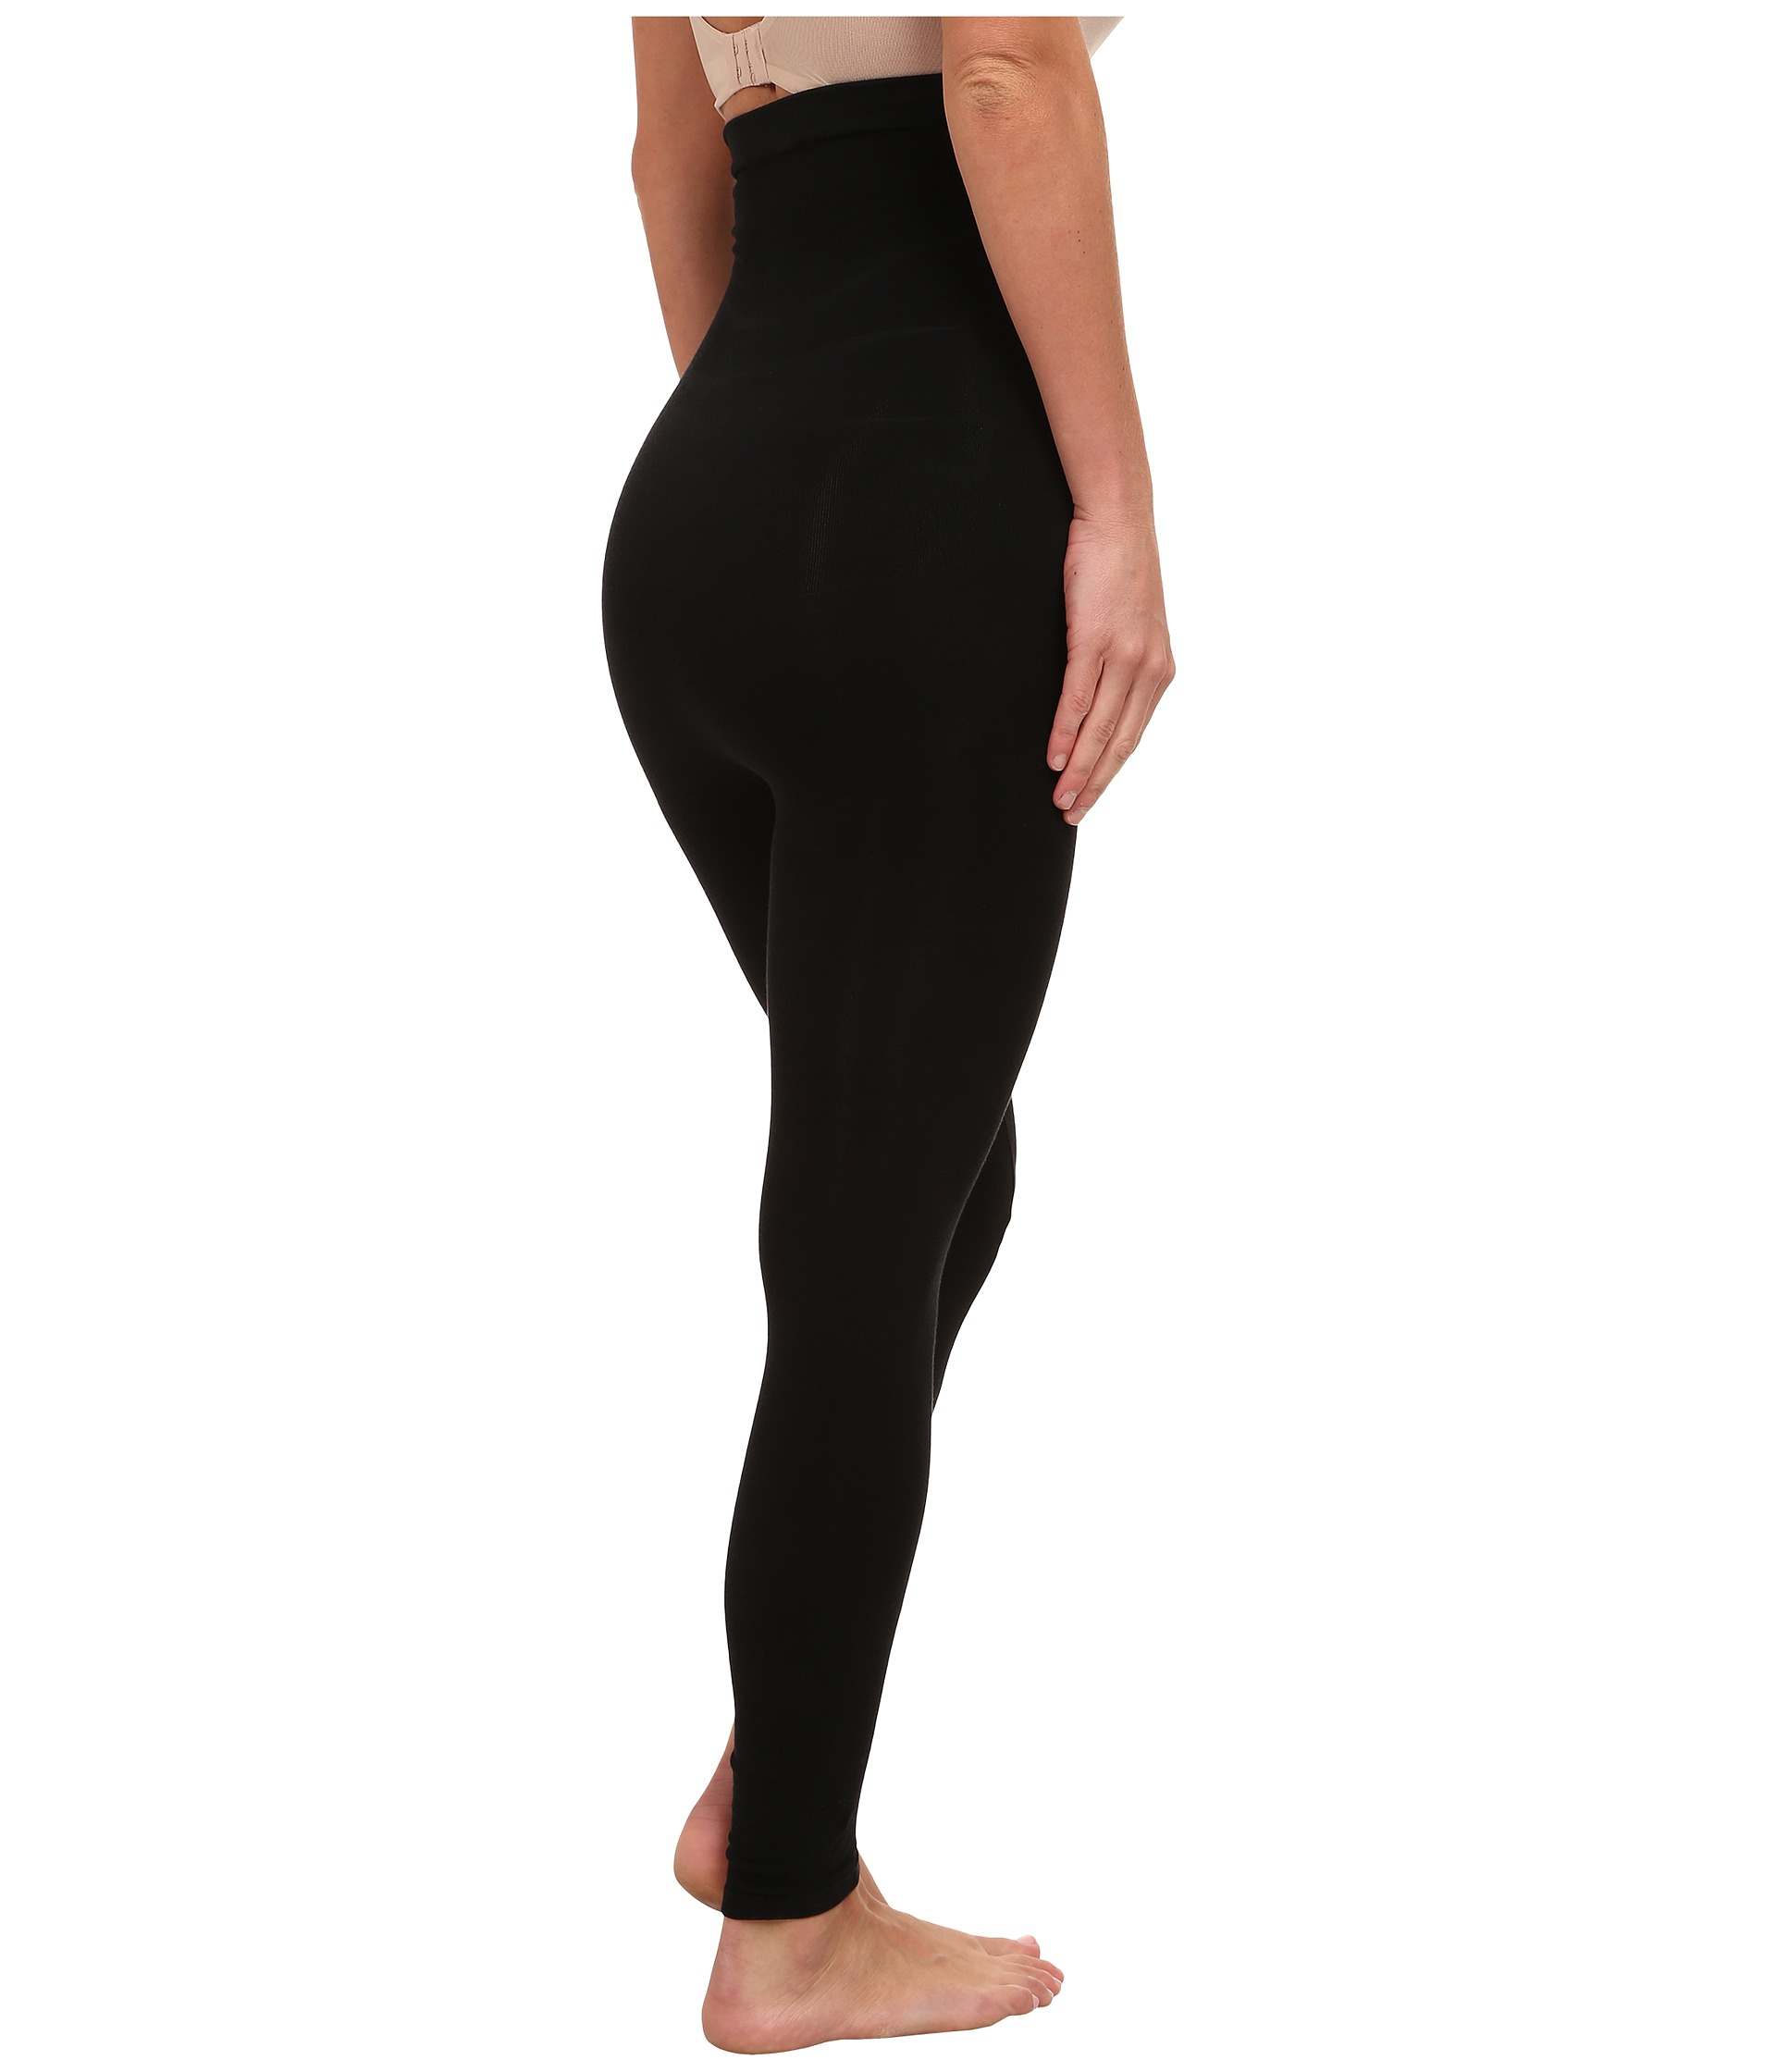 TYPES - The SATINA High Waisted Full Length Leggings are for every size Homma Premium Thick High Waist Tummy Compression Slimming Leggings. by Homma. $ $ 19 50 Prime. FREE Shipping on eligible orders. Some sizes/colors are Prime eligible. 4 out of 5 stars Product Features.